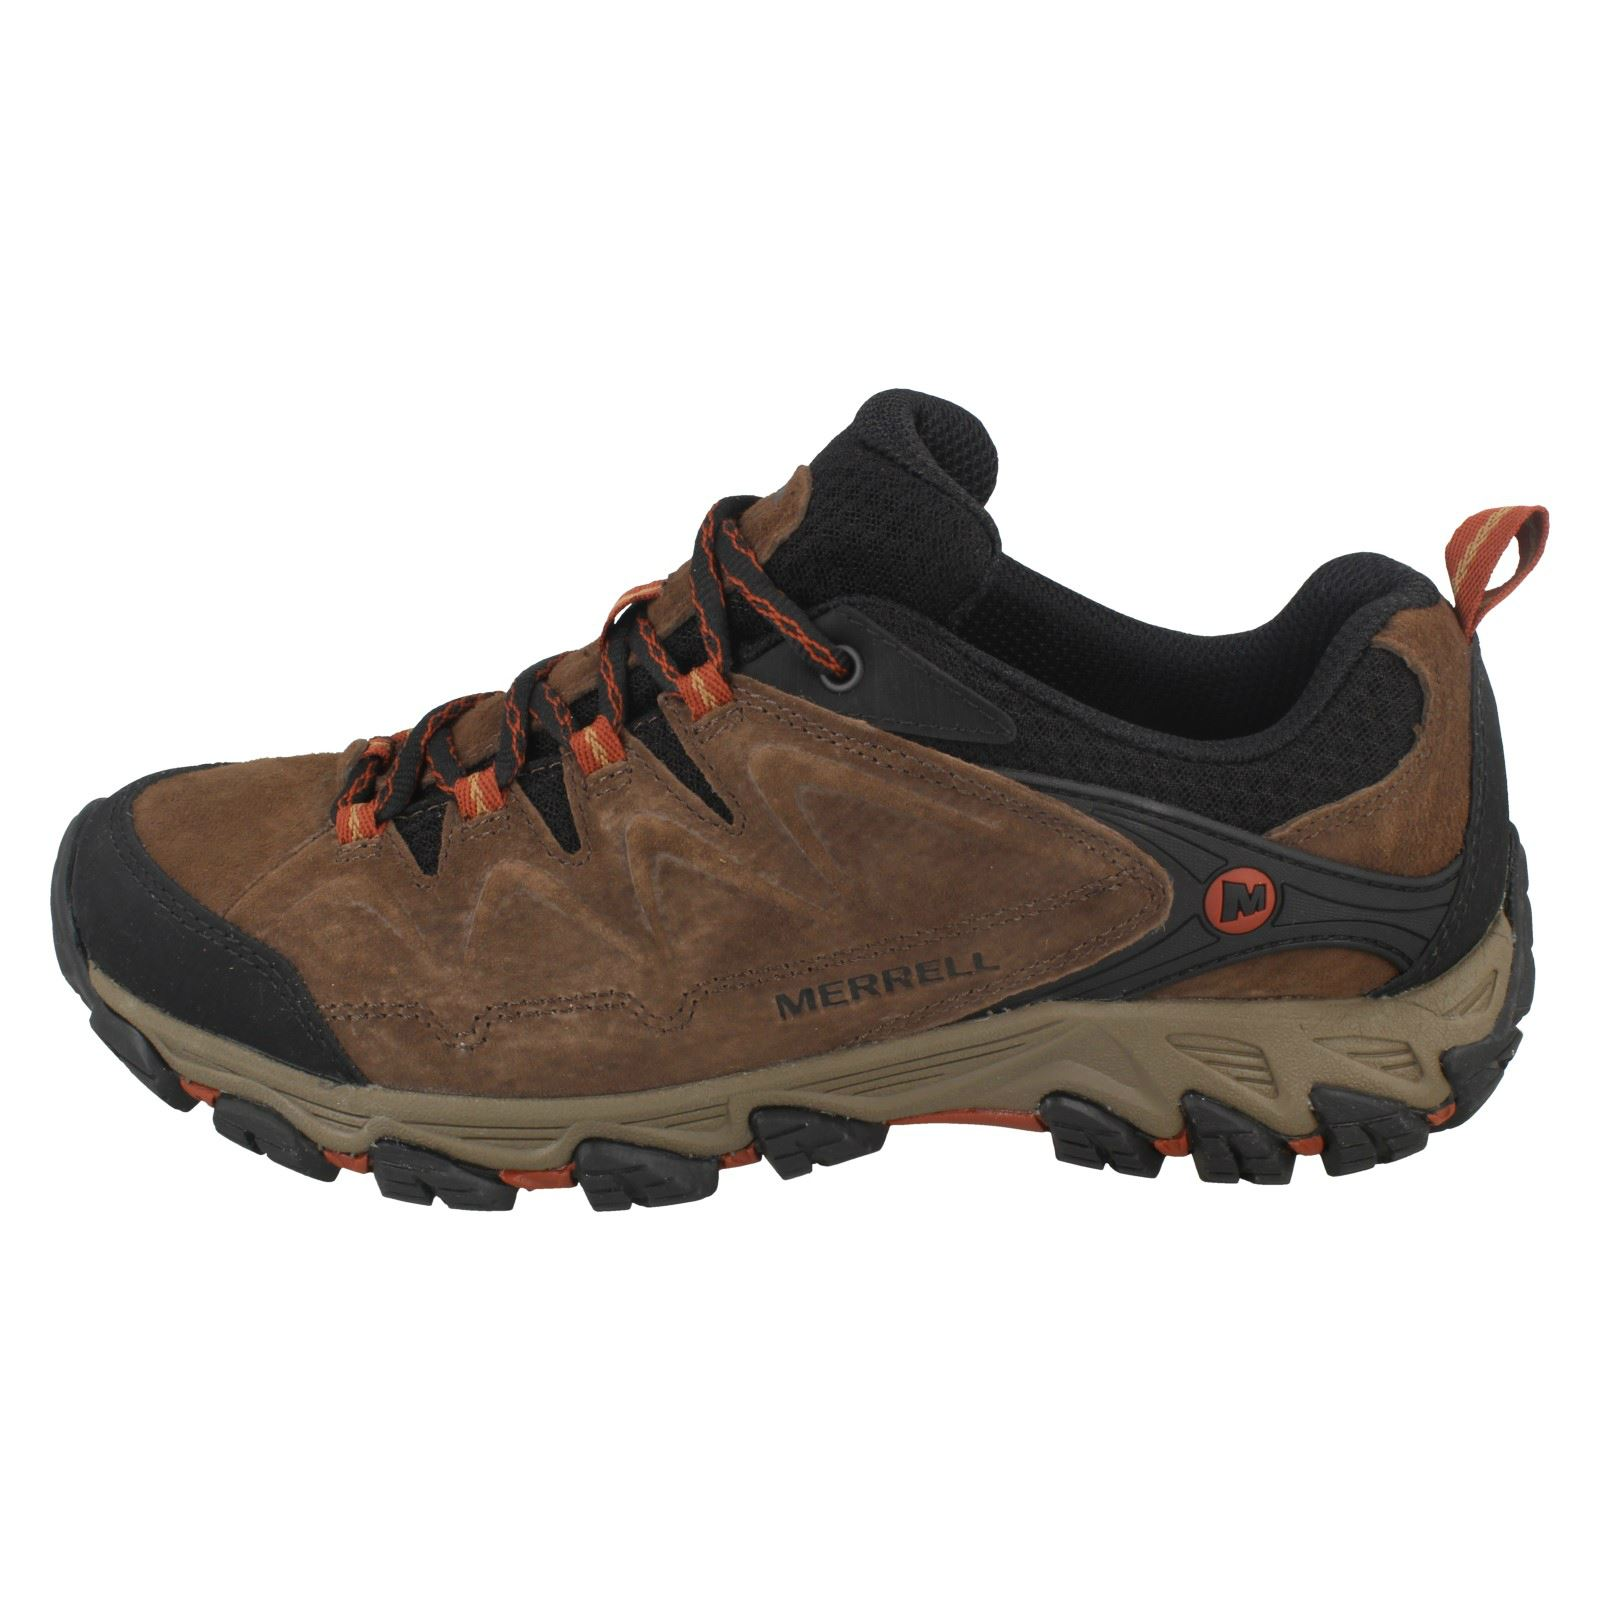 Mens Merrell Merrell Merrell Casual Lace Up schuhe - Serraton f68fb4